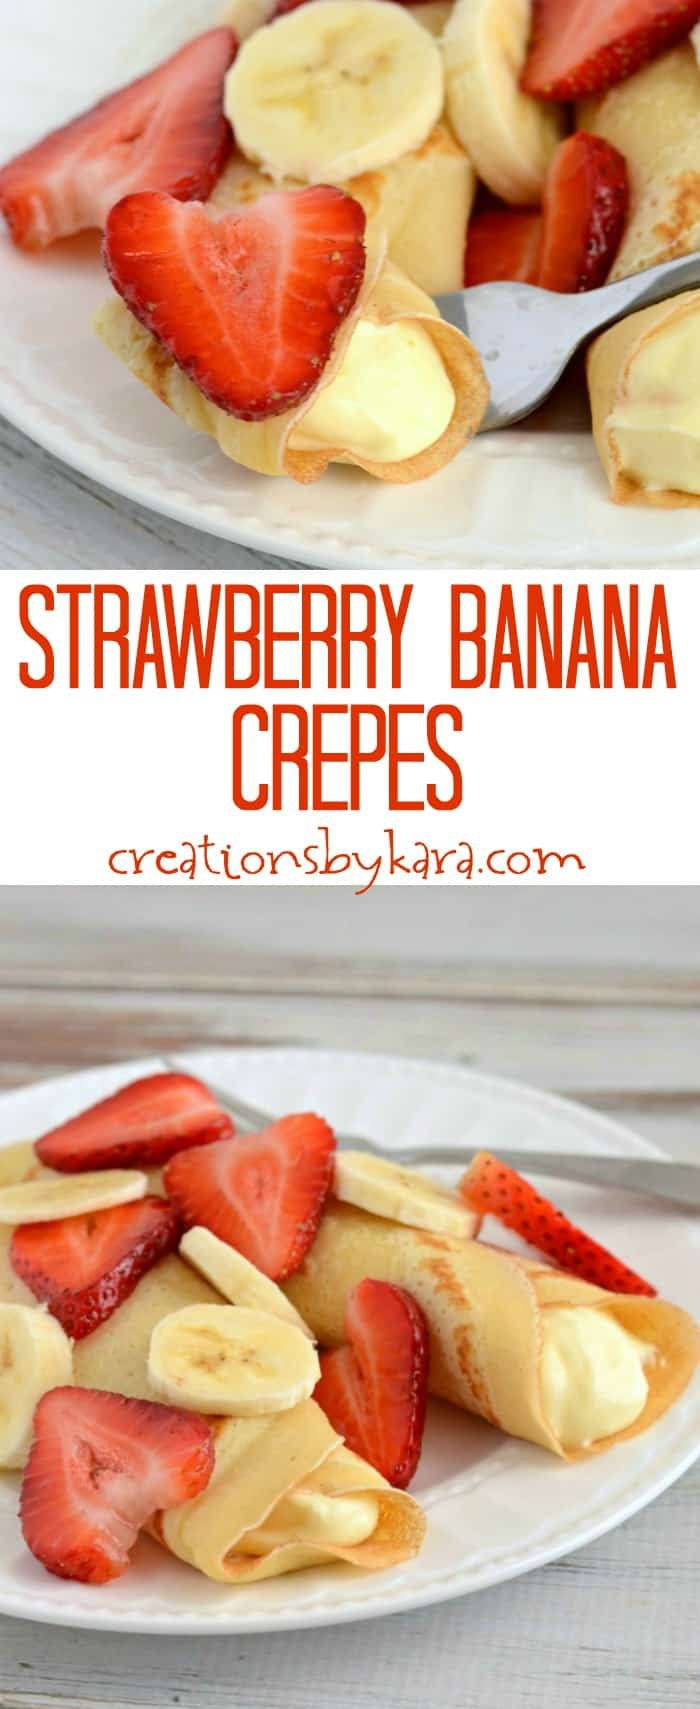 Strawberry-Banana-Crepes.jpg